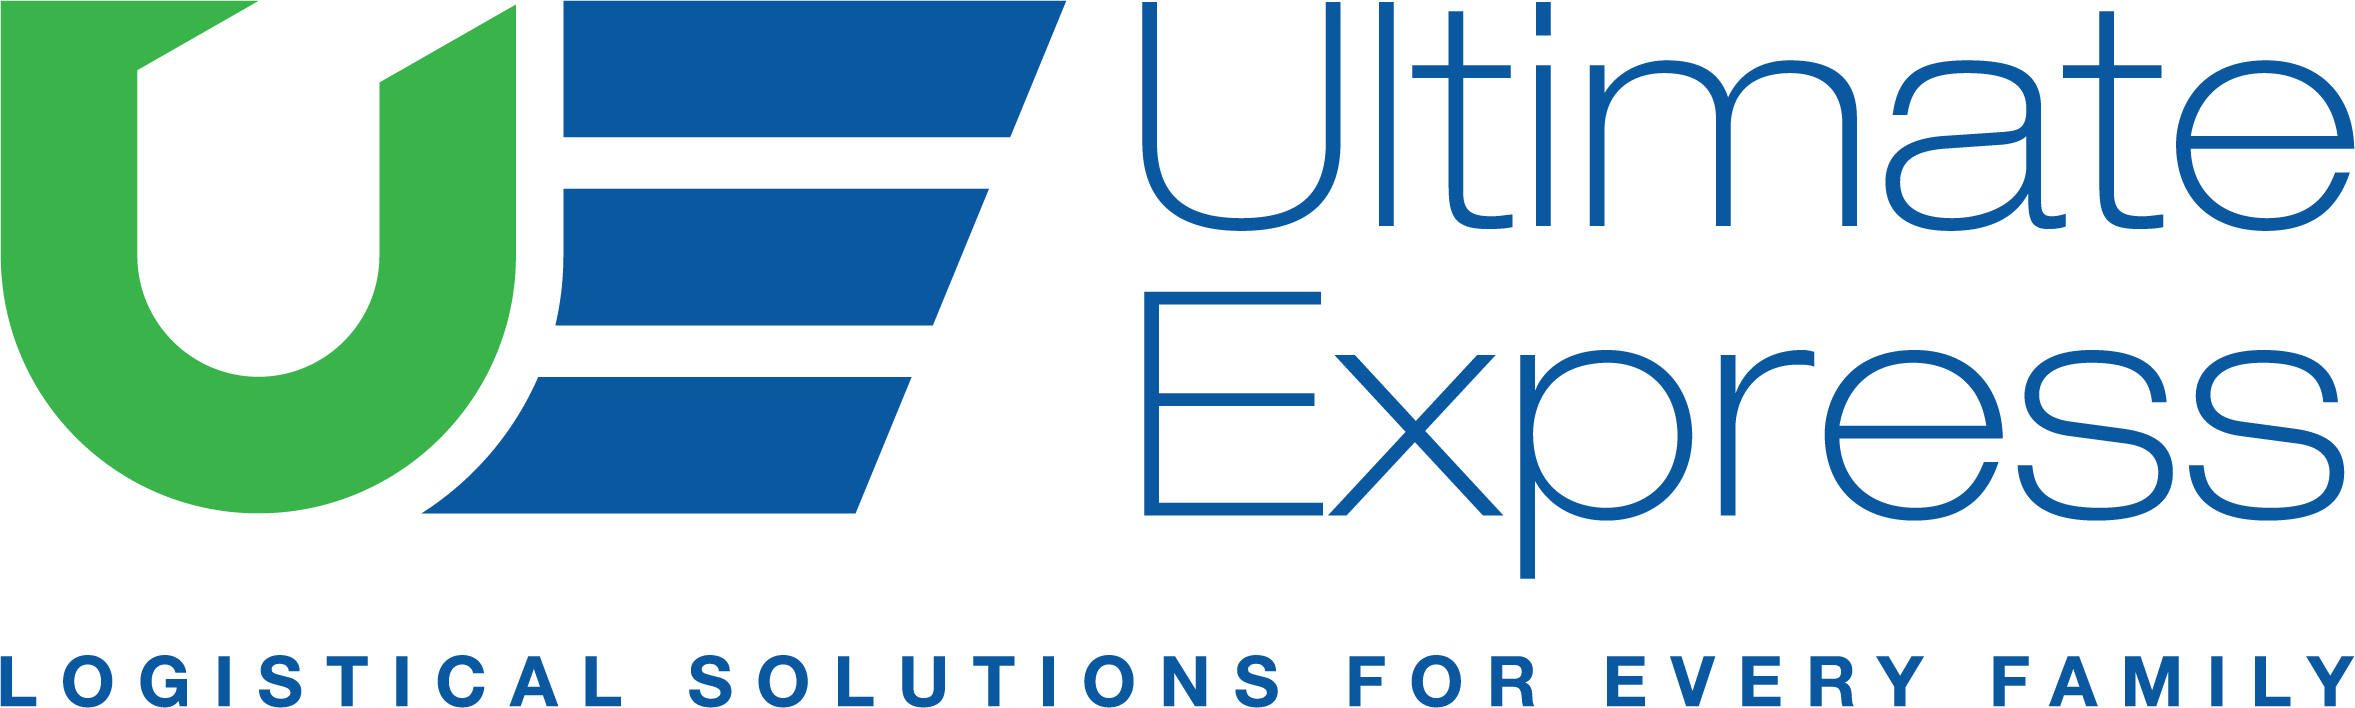 Ultimate Express final logo.png